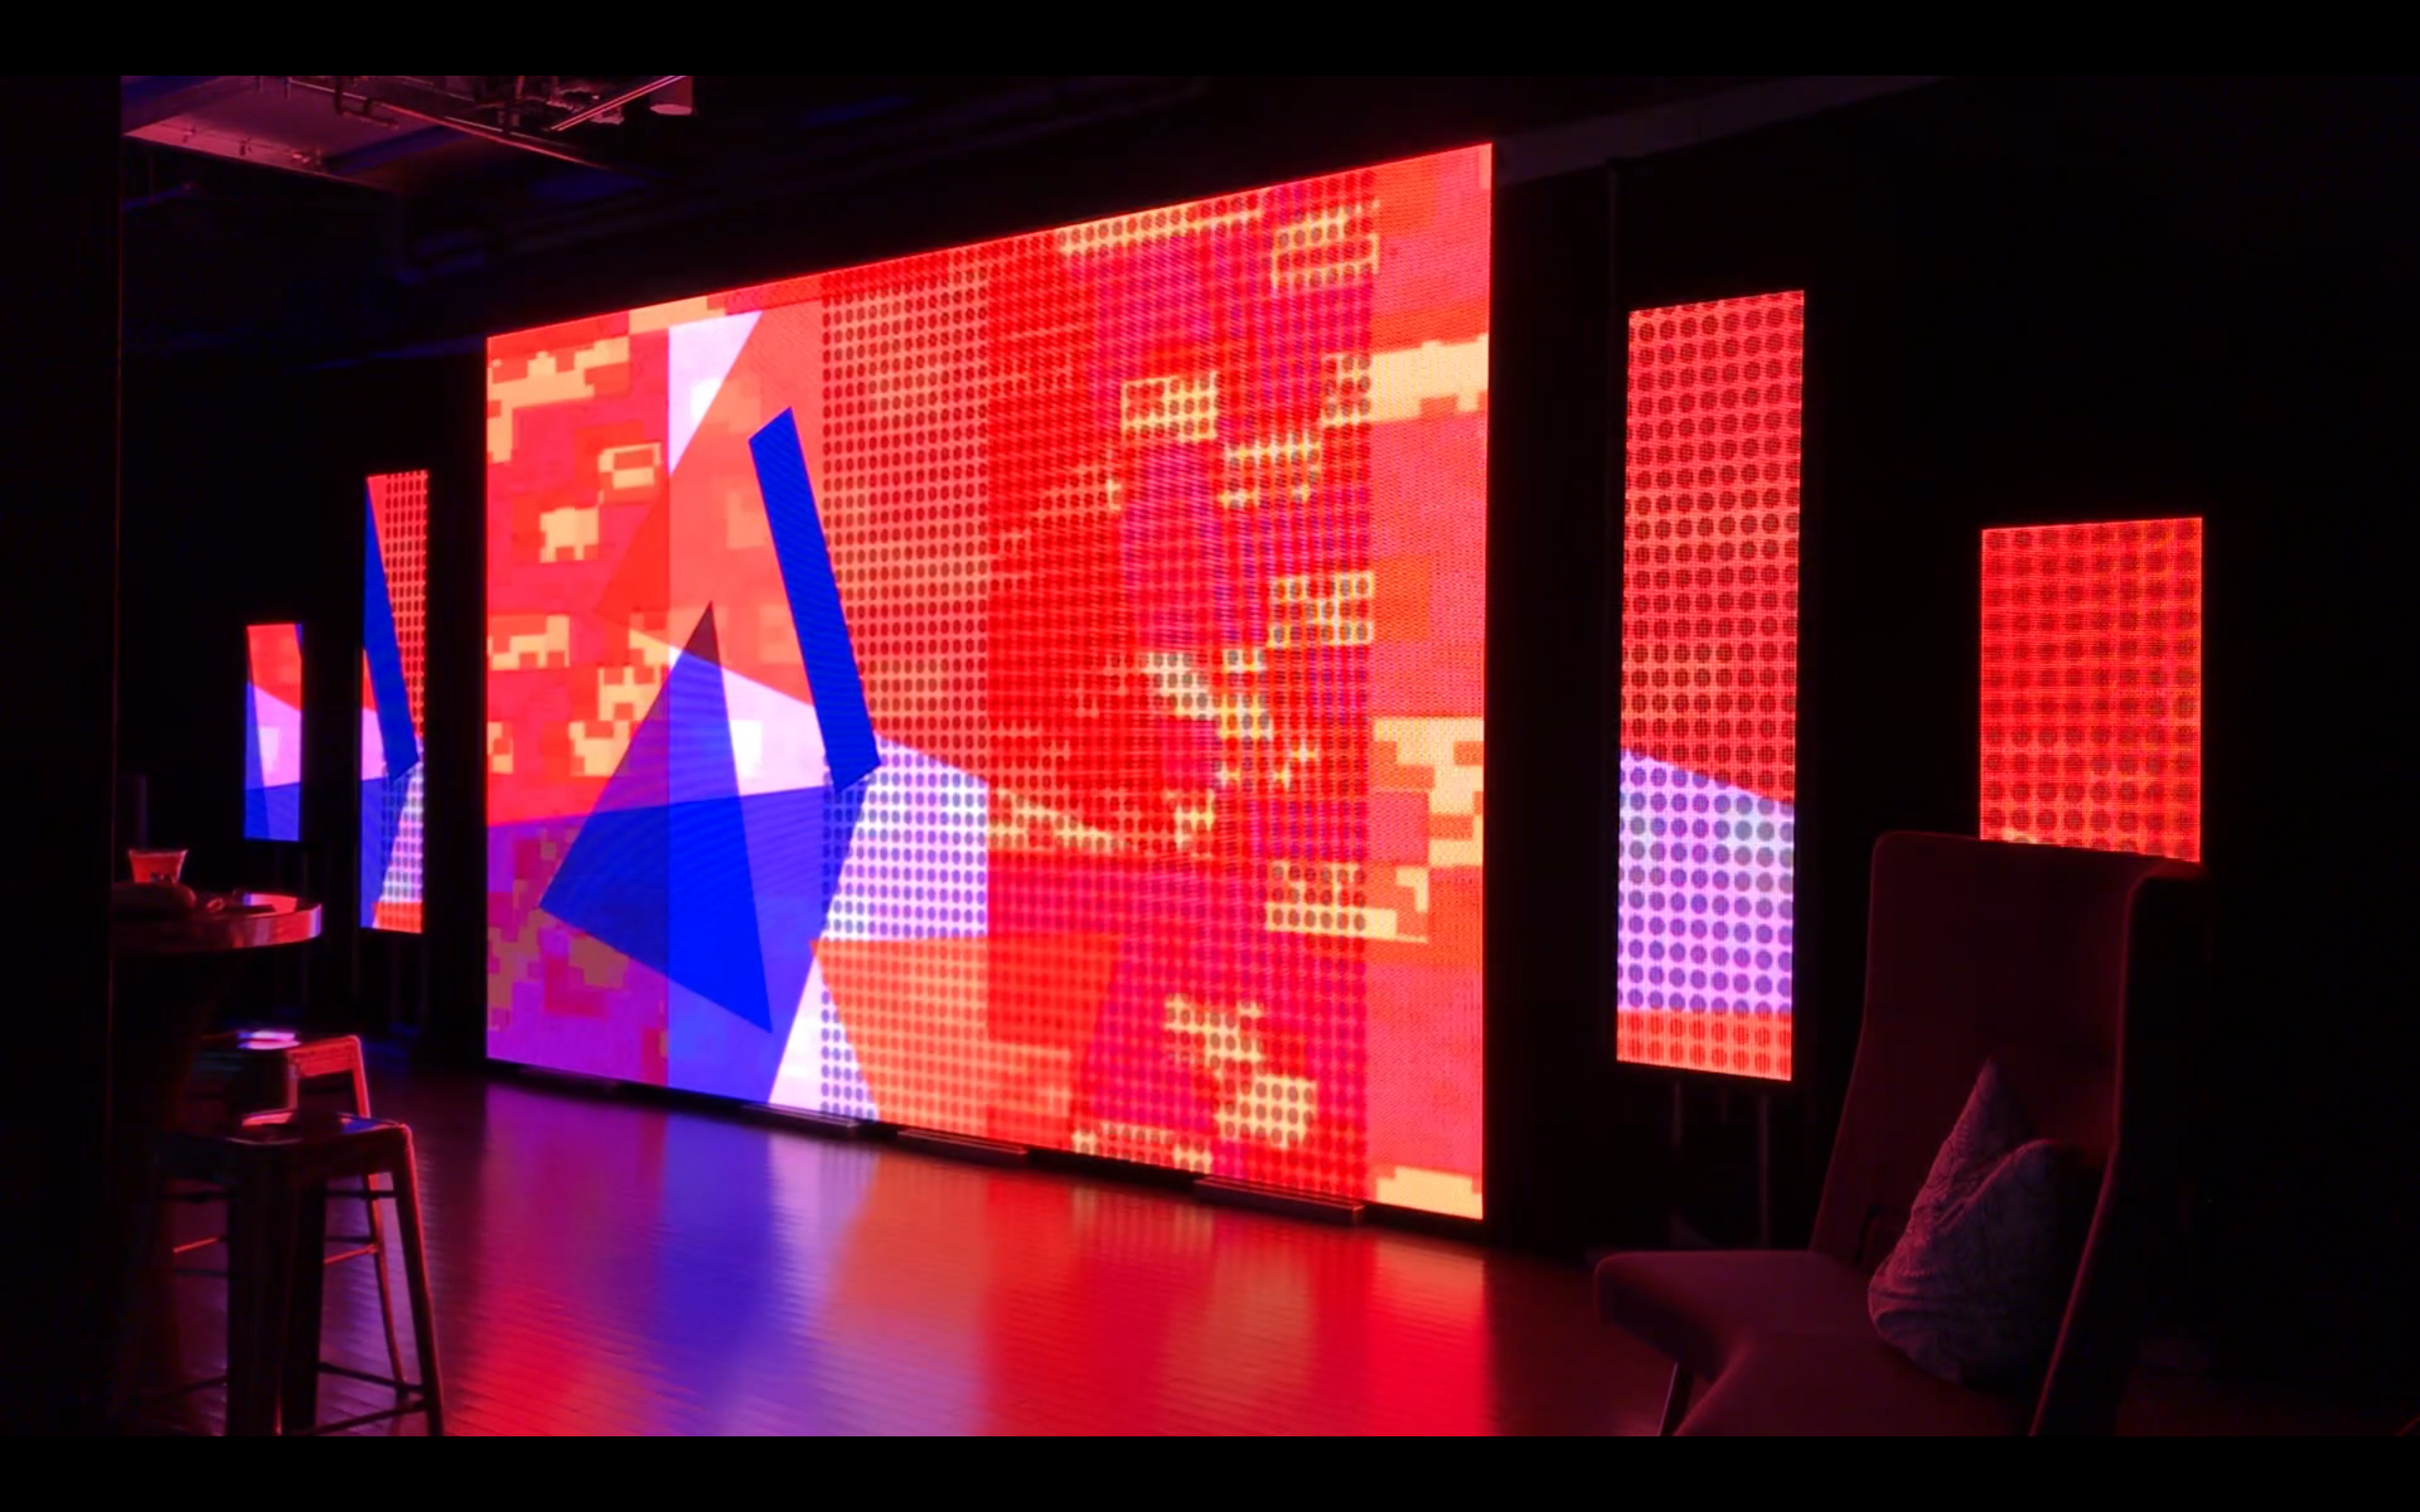 still showing installation view of digital conglomerate